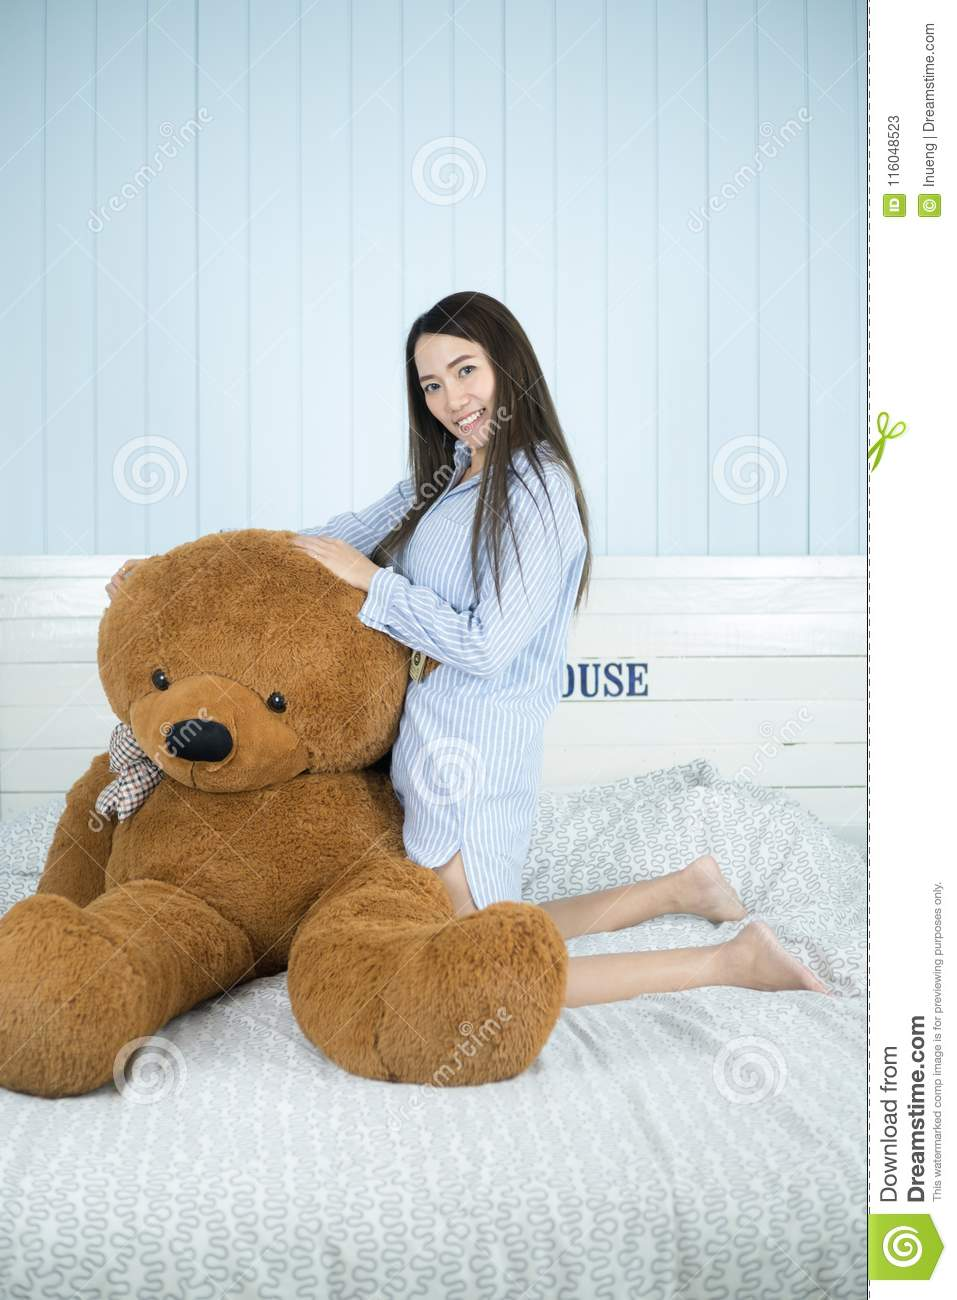 Have thought asian teddy bear not see